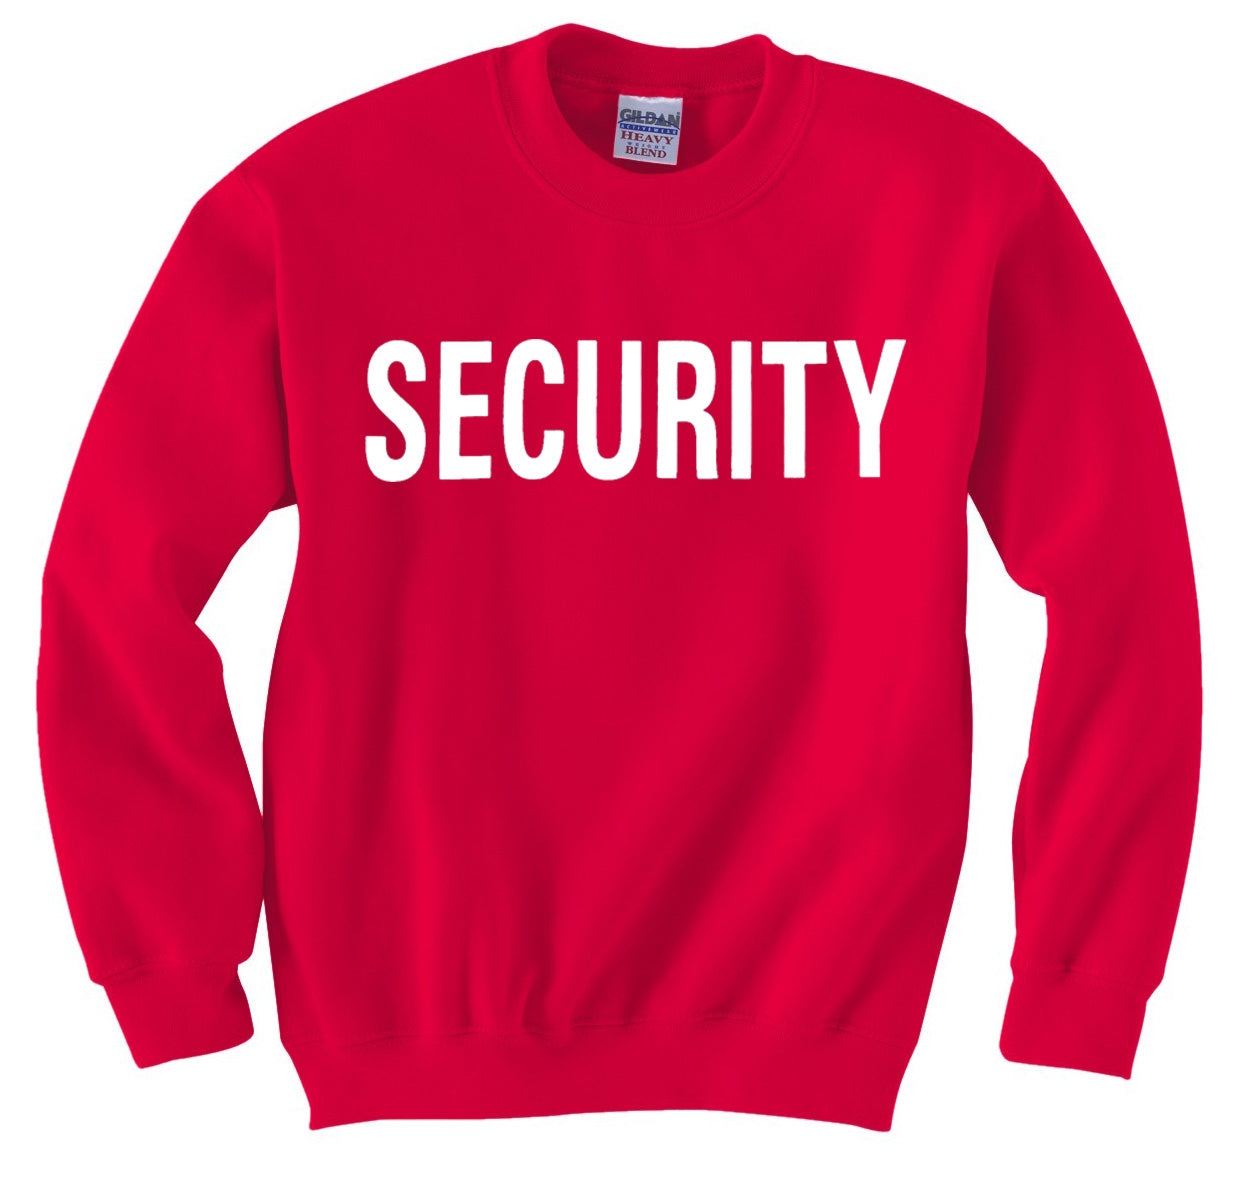 Security Crew Neck Sweatshirt